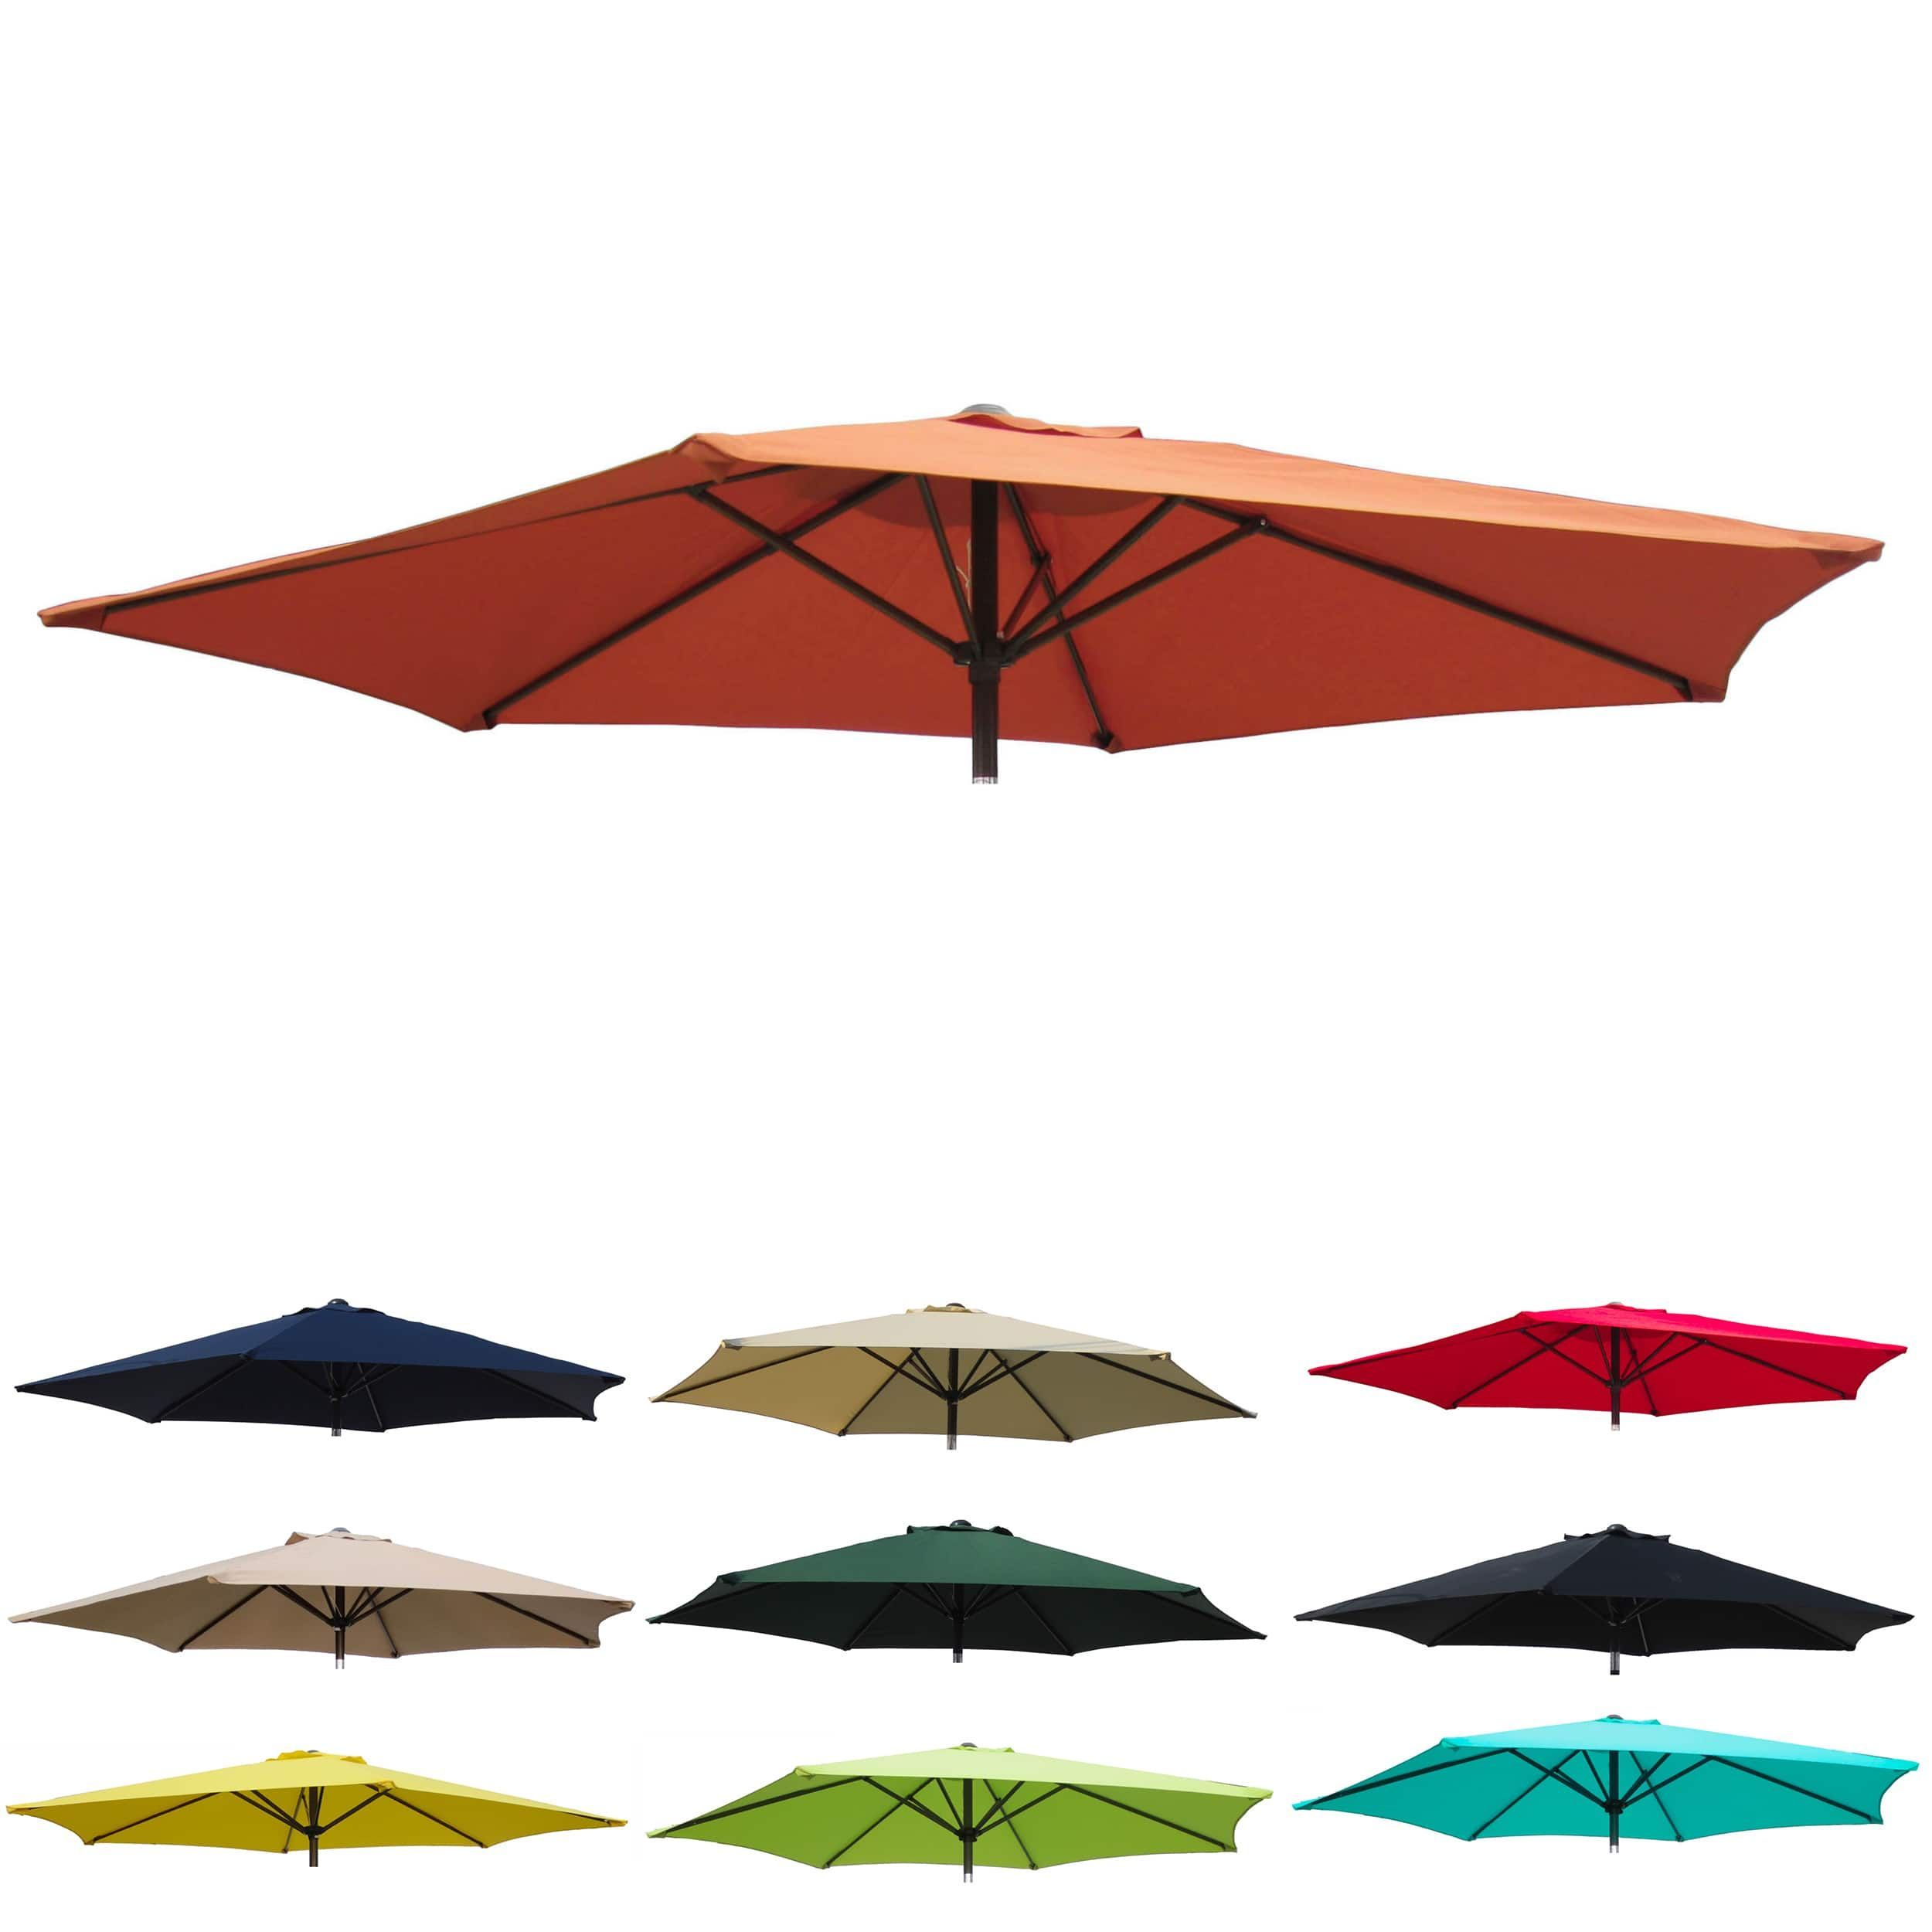 Delightful International Caravan St. Kitts Replacement Canopy For 8 Ft. Patio Umbrella  In